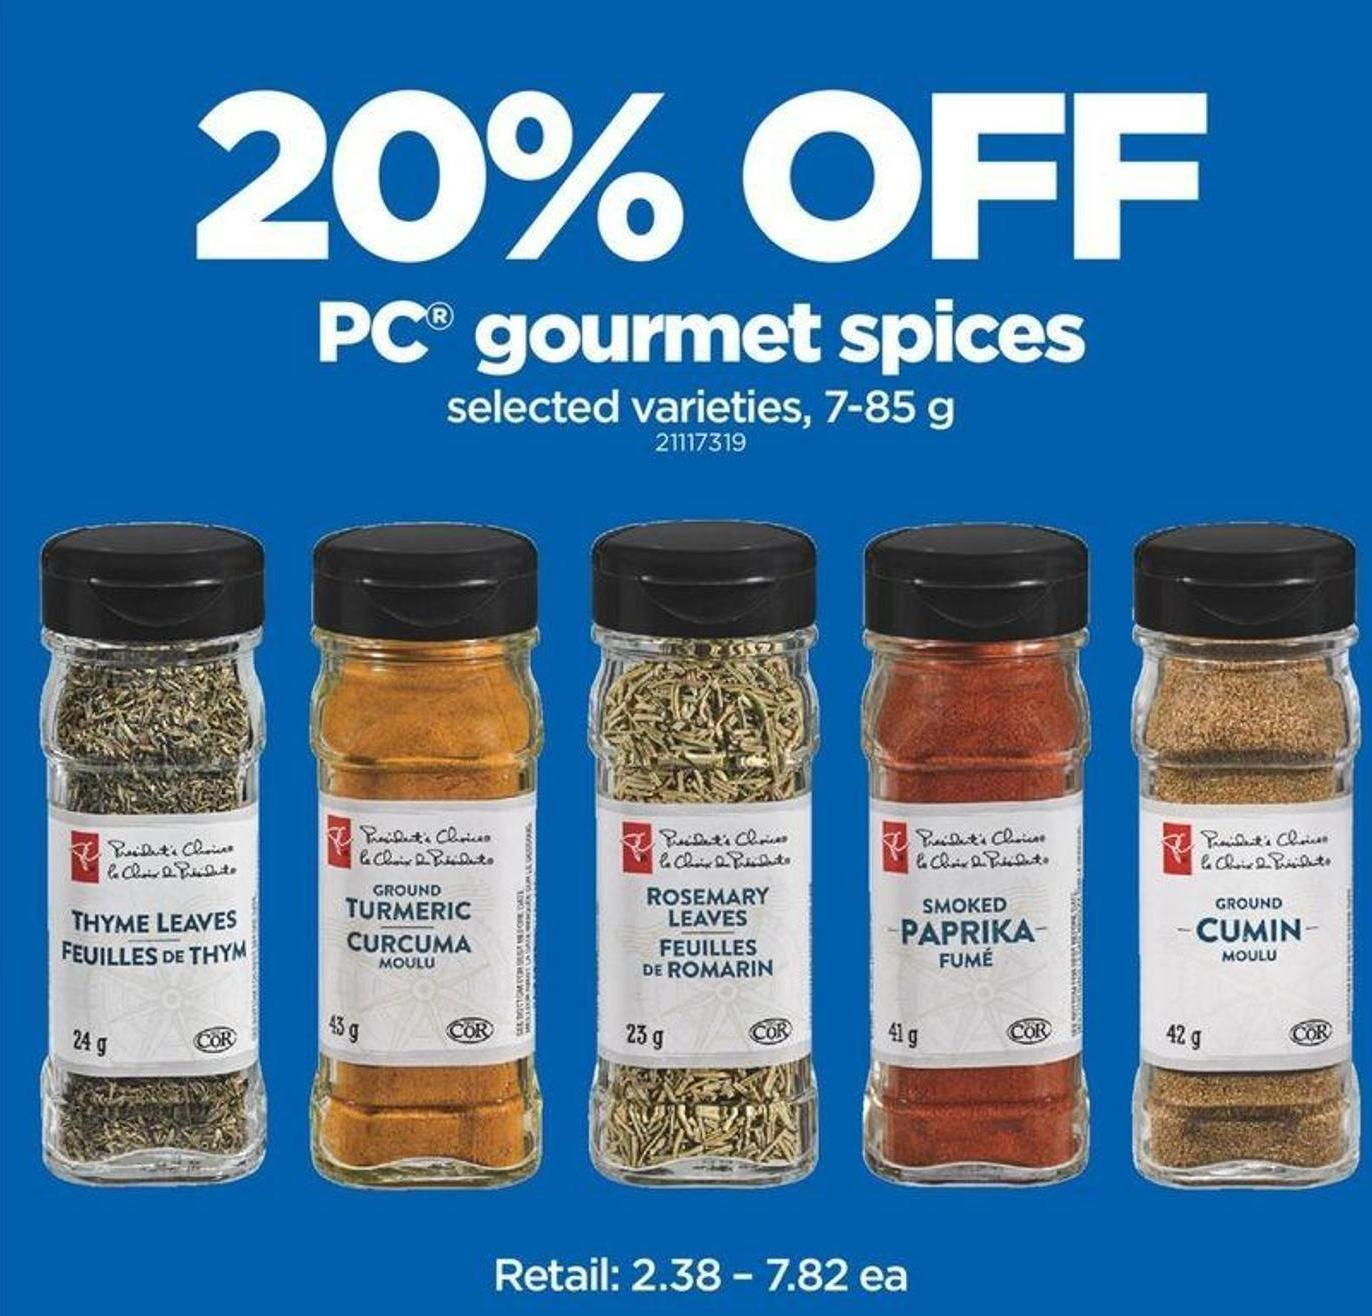 20% Off PC Gourmet Spices - 7-85 G